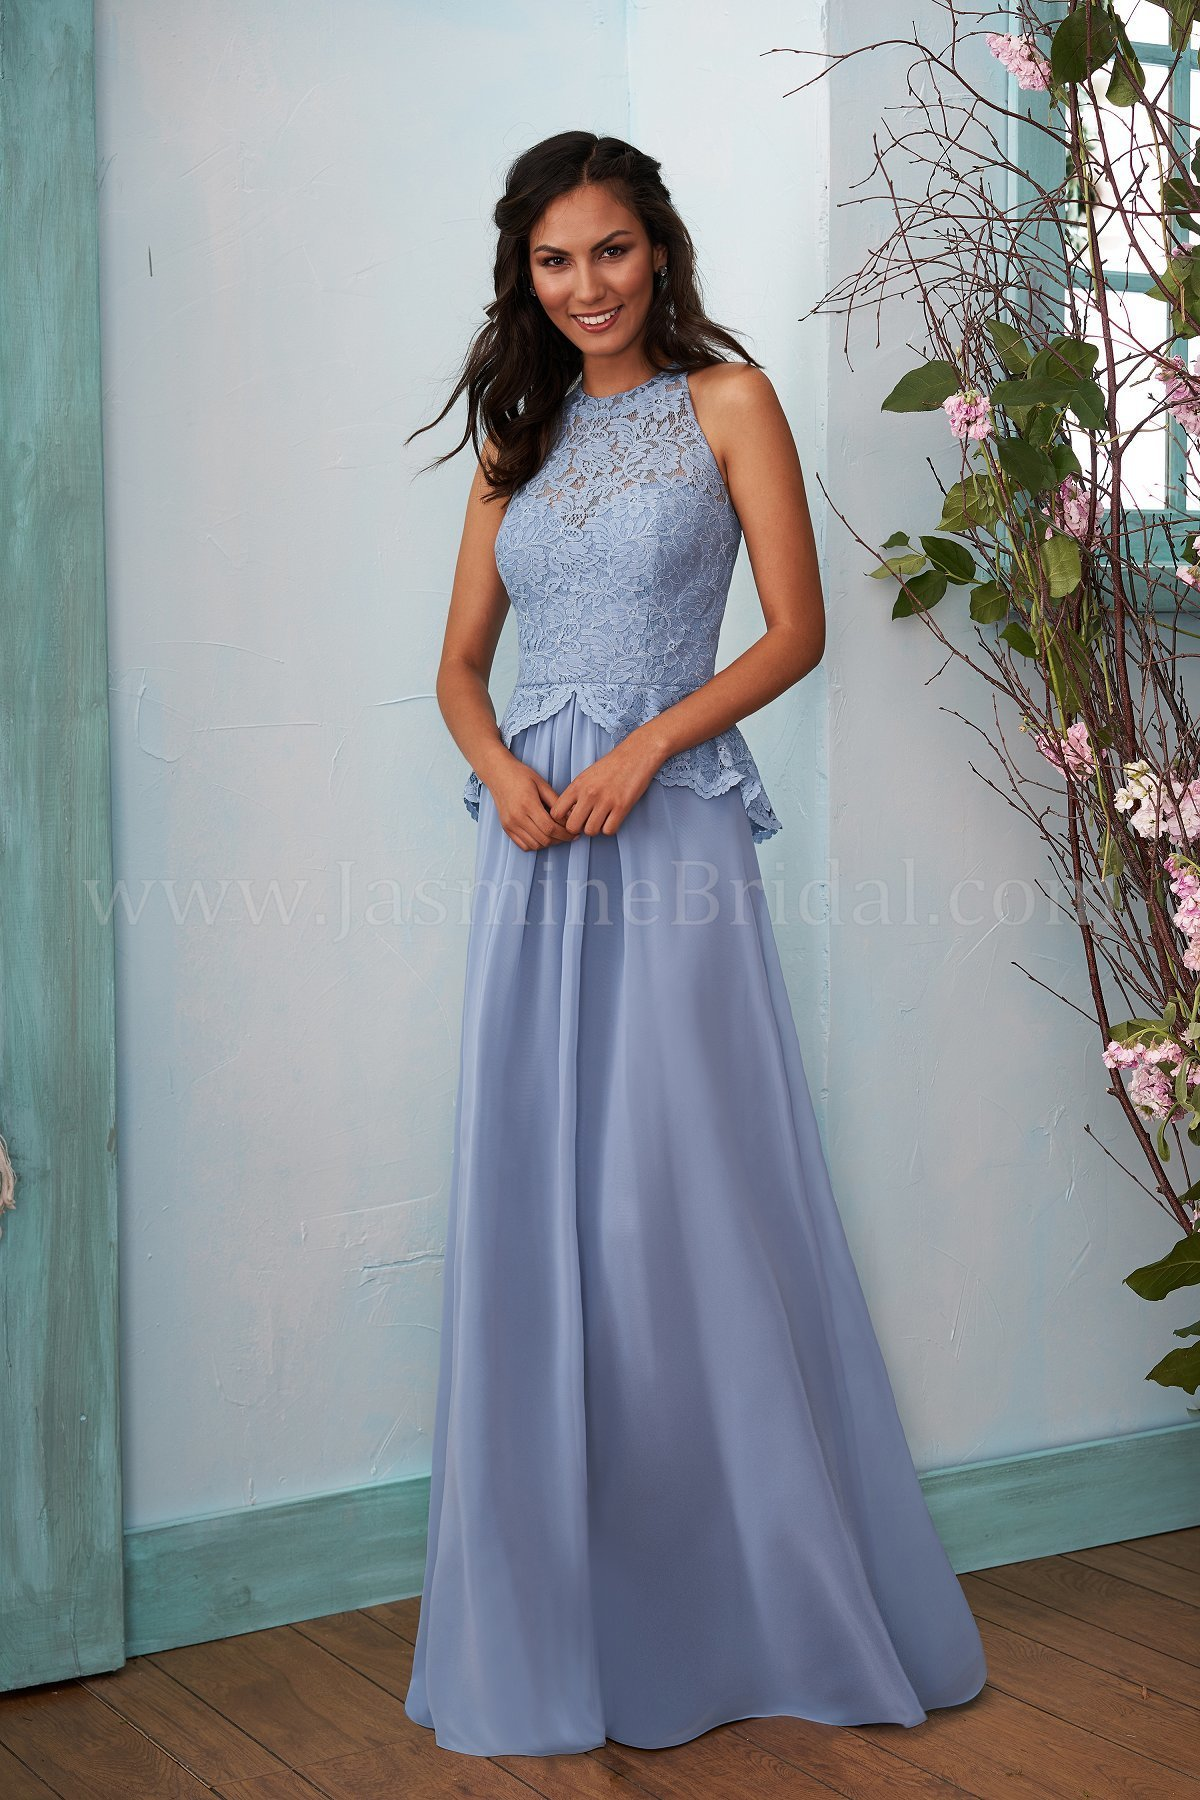 bridesmaid-dresses-B203010-F